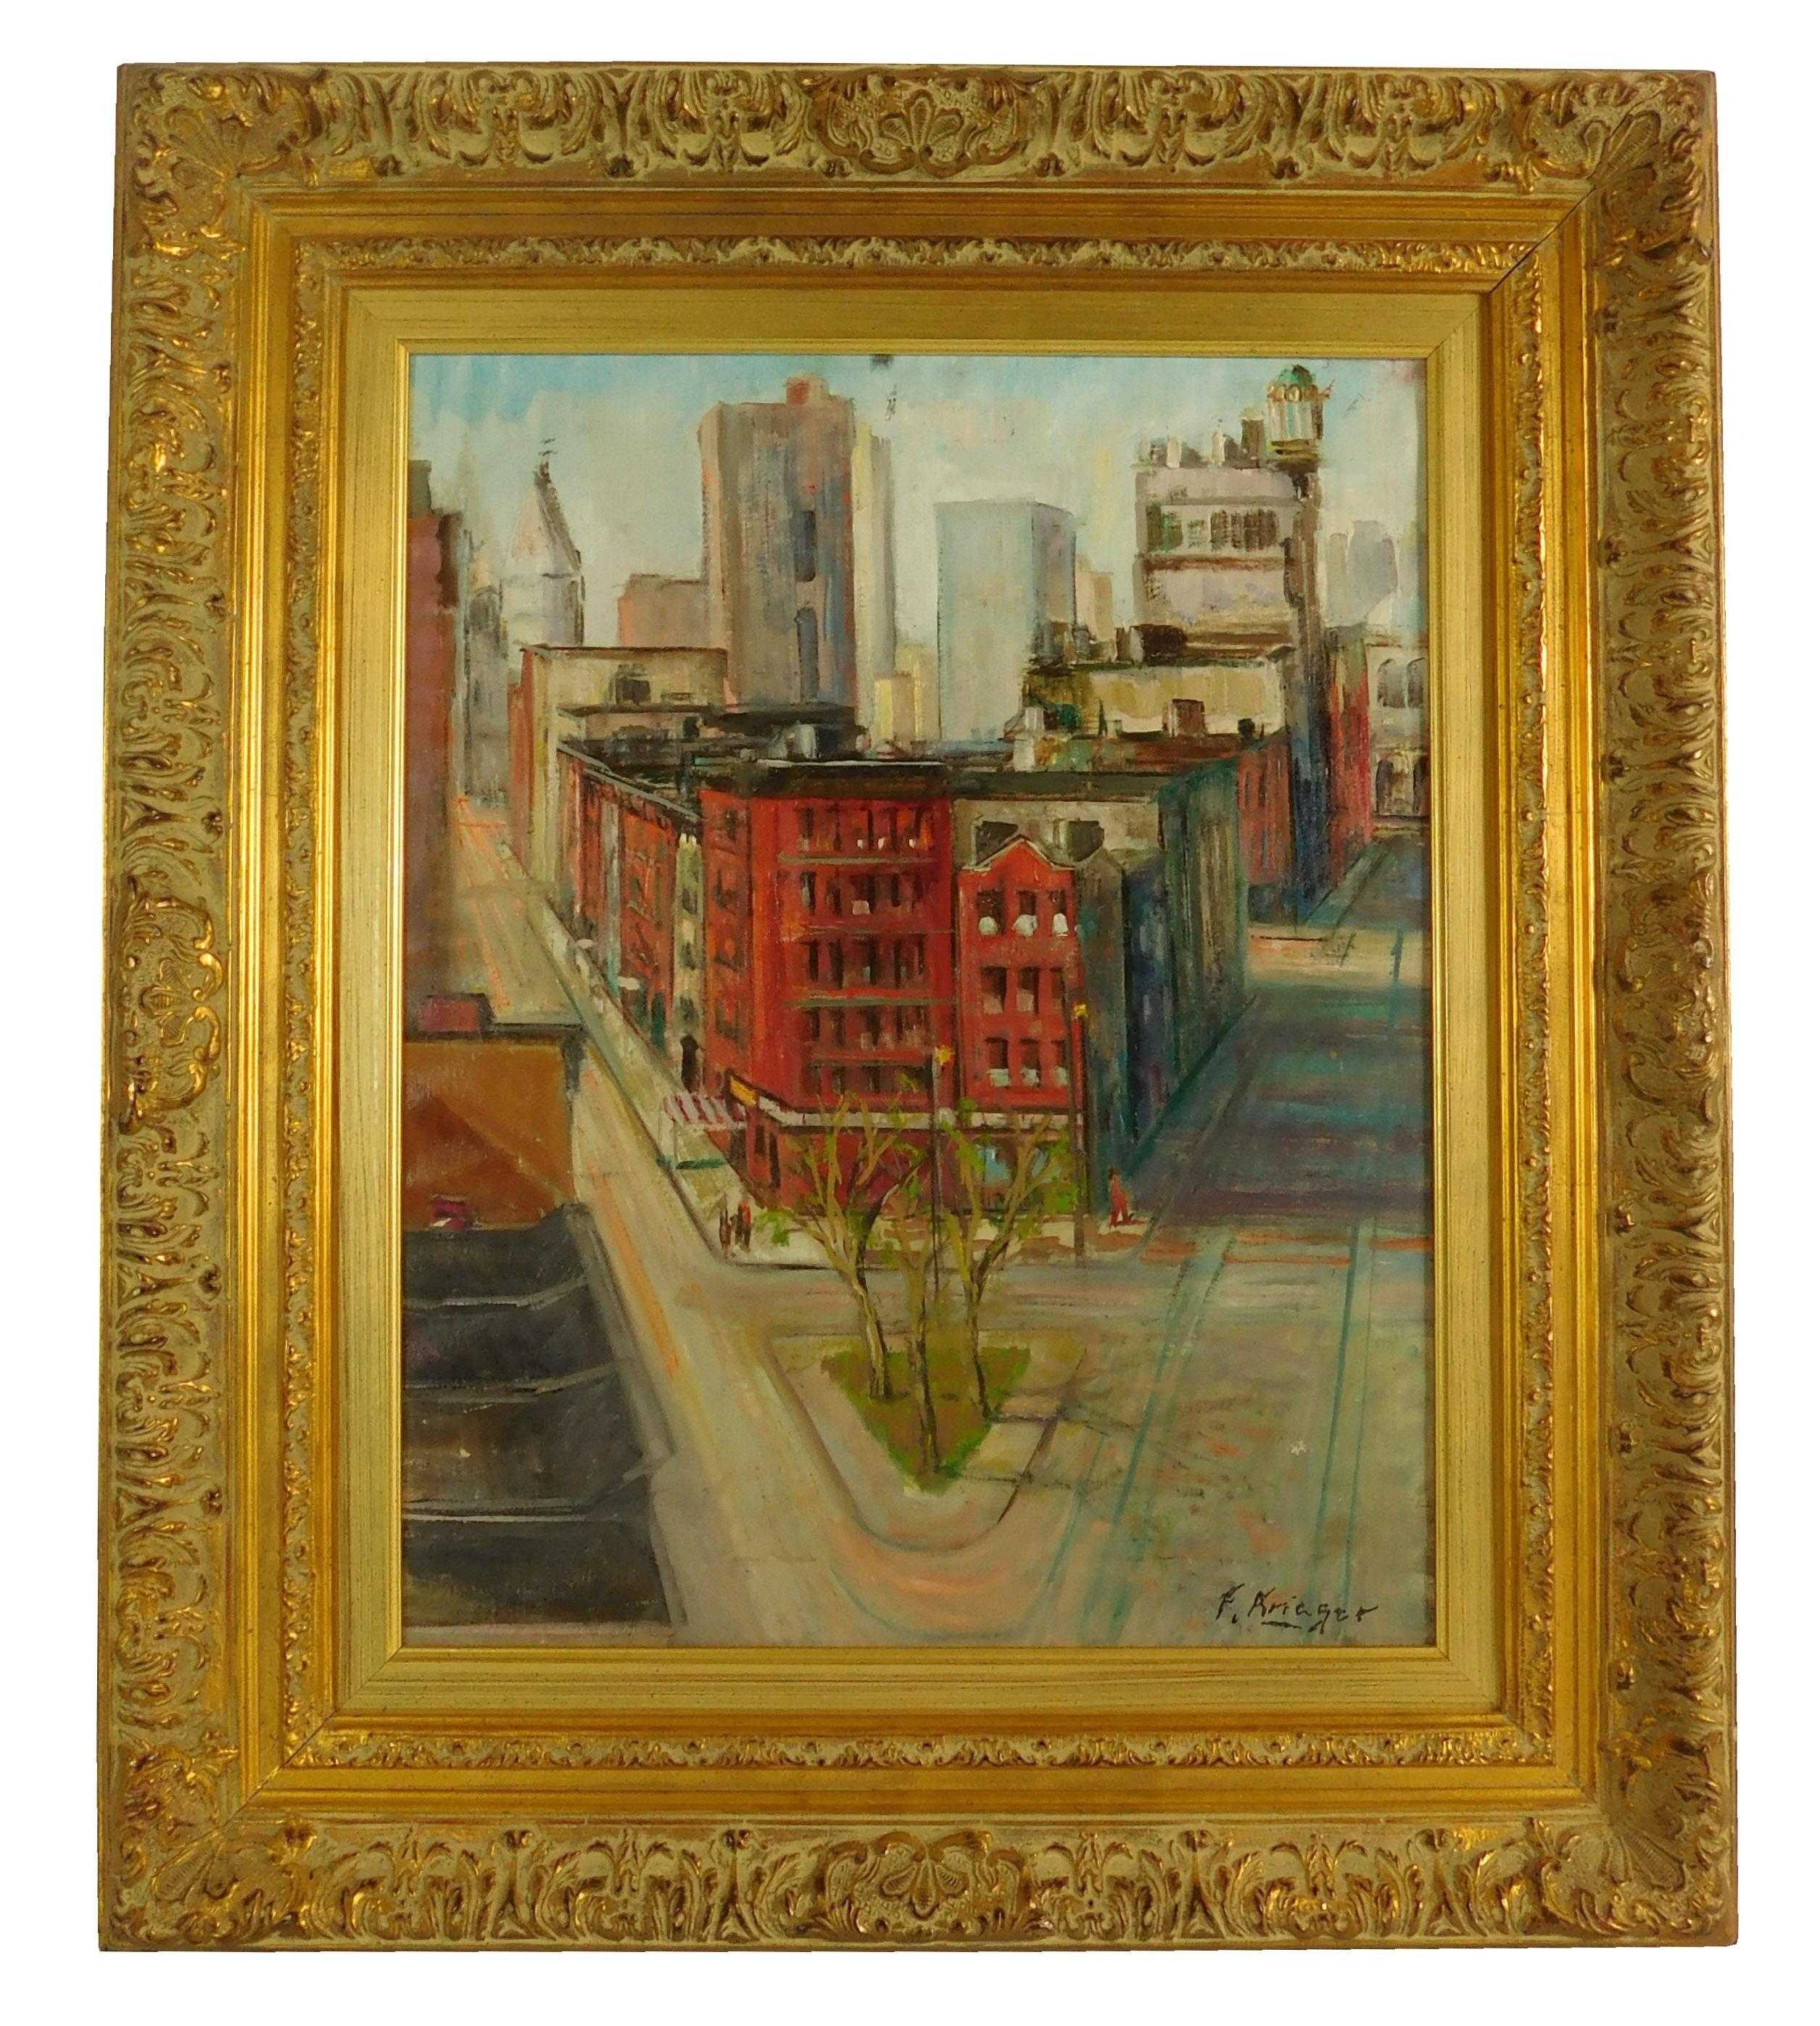 F. Krieger, oil on canvas, depicts city scene with red building at center and median with three trees in foreground, cityscape in ba...